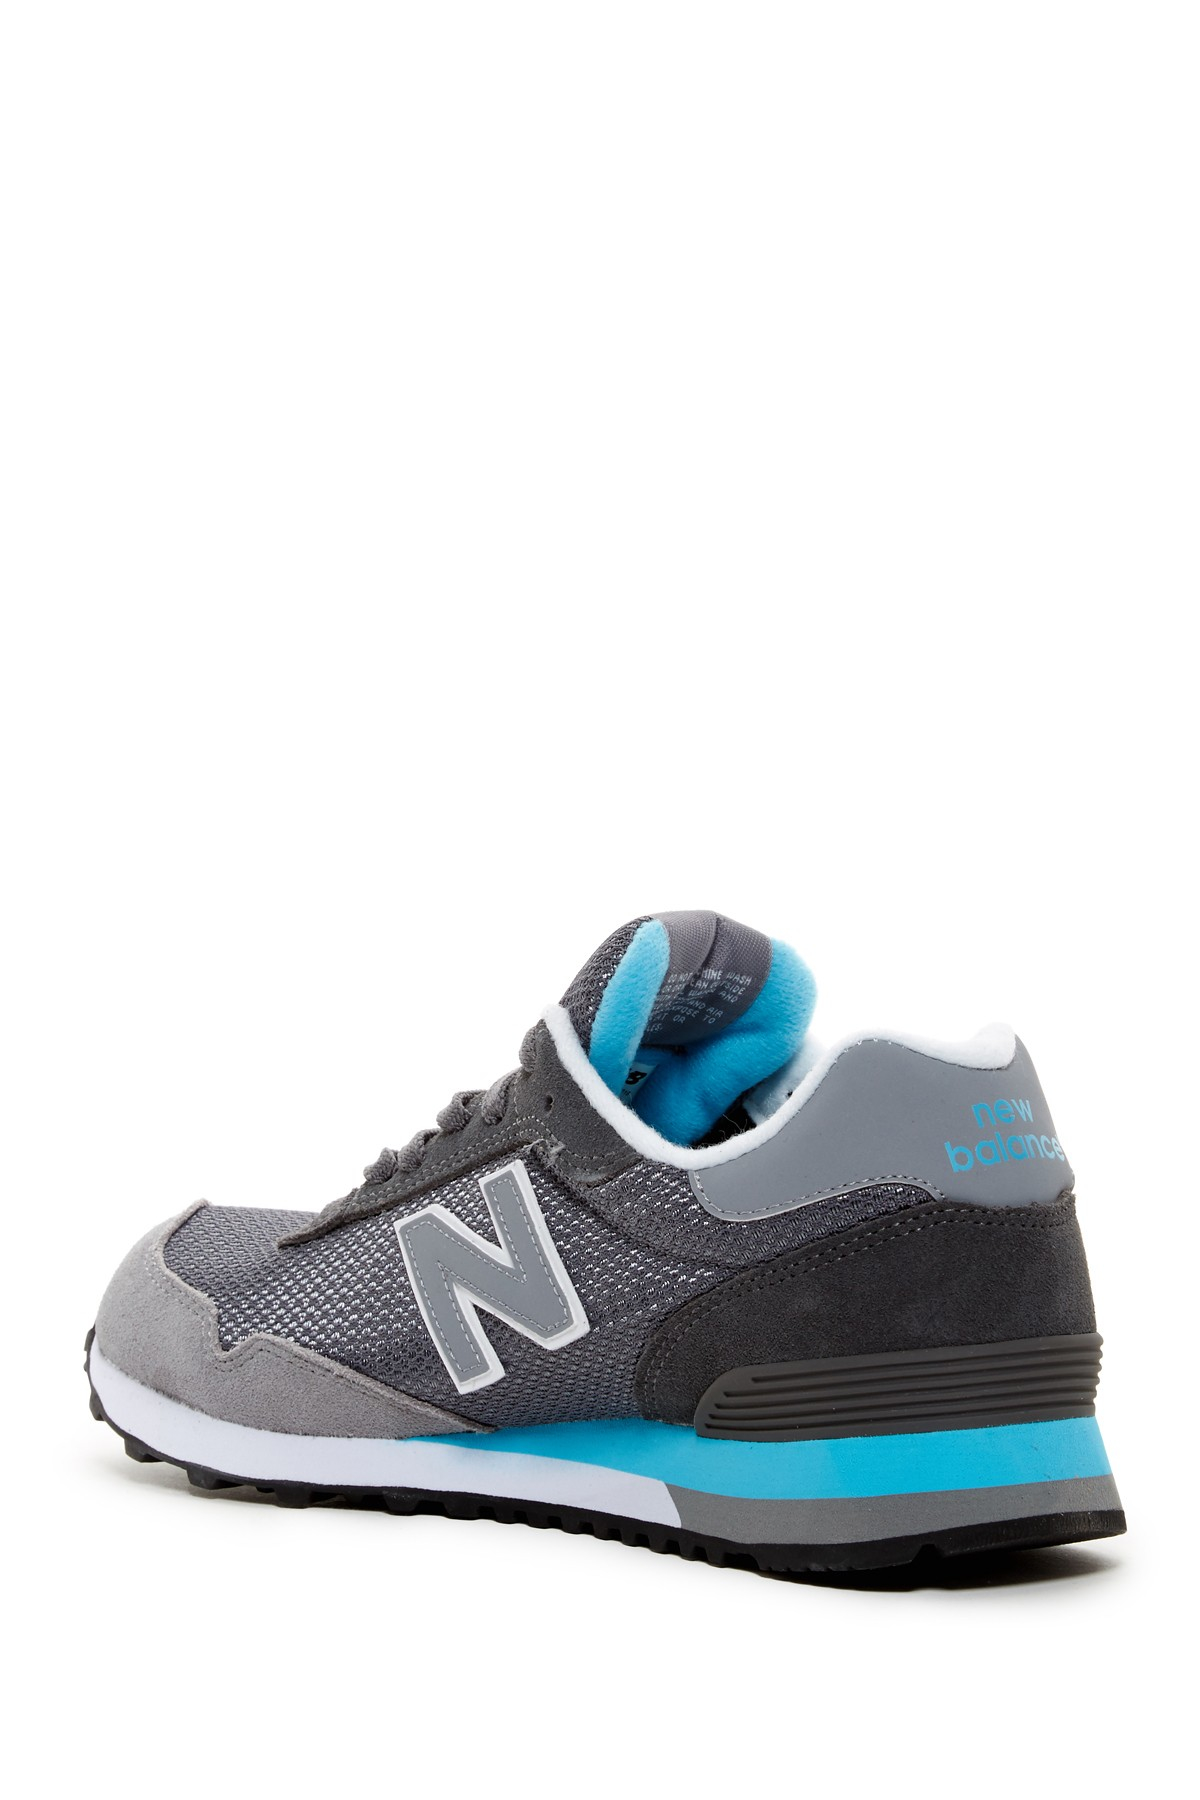 Lyst New Balance 515 Classics Sneaker In Gray For Men